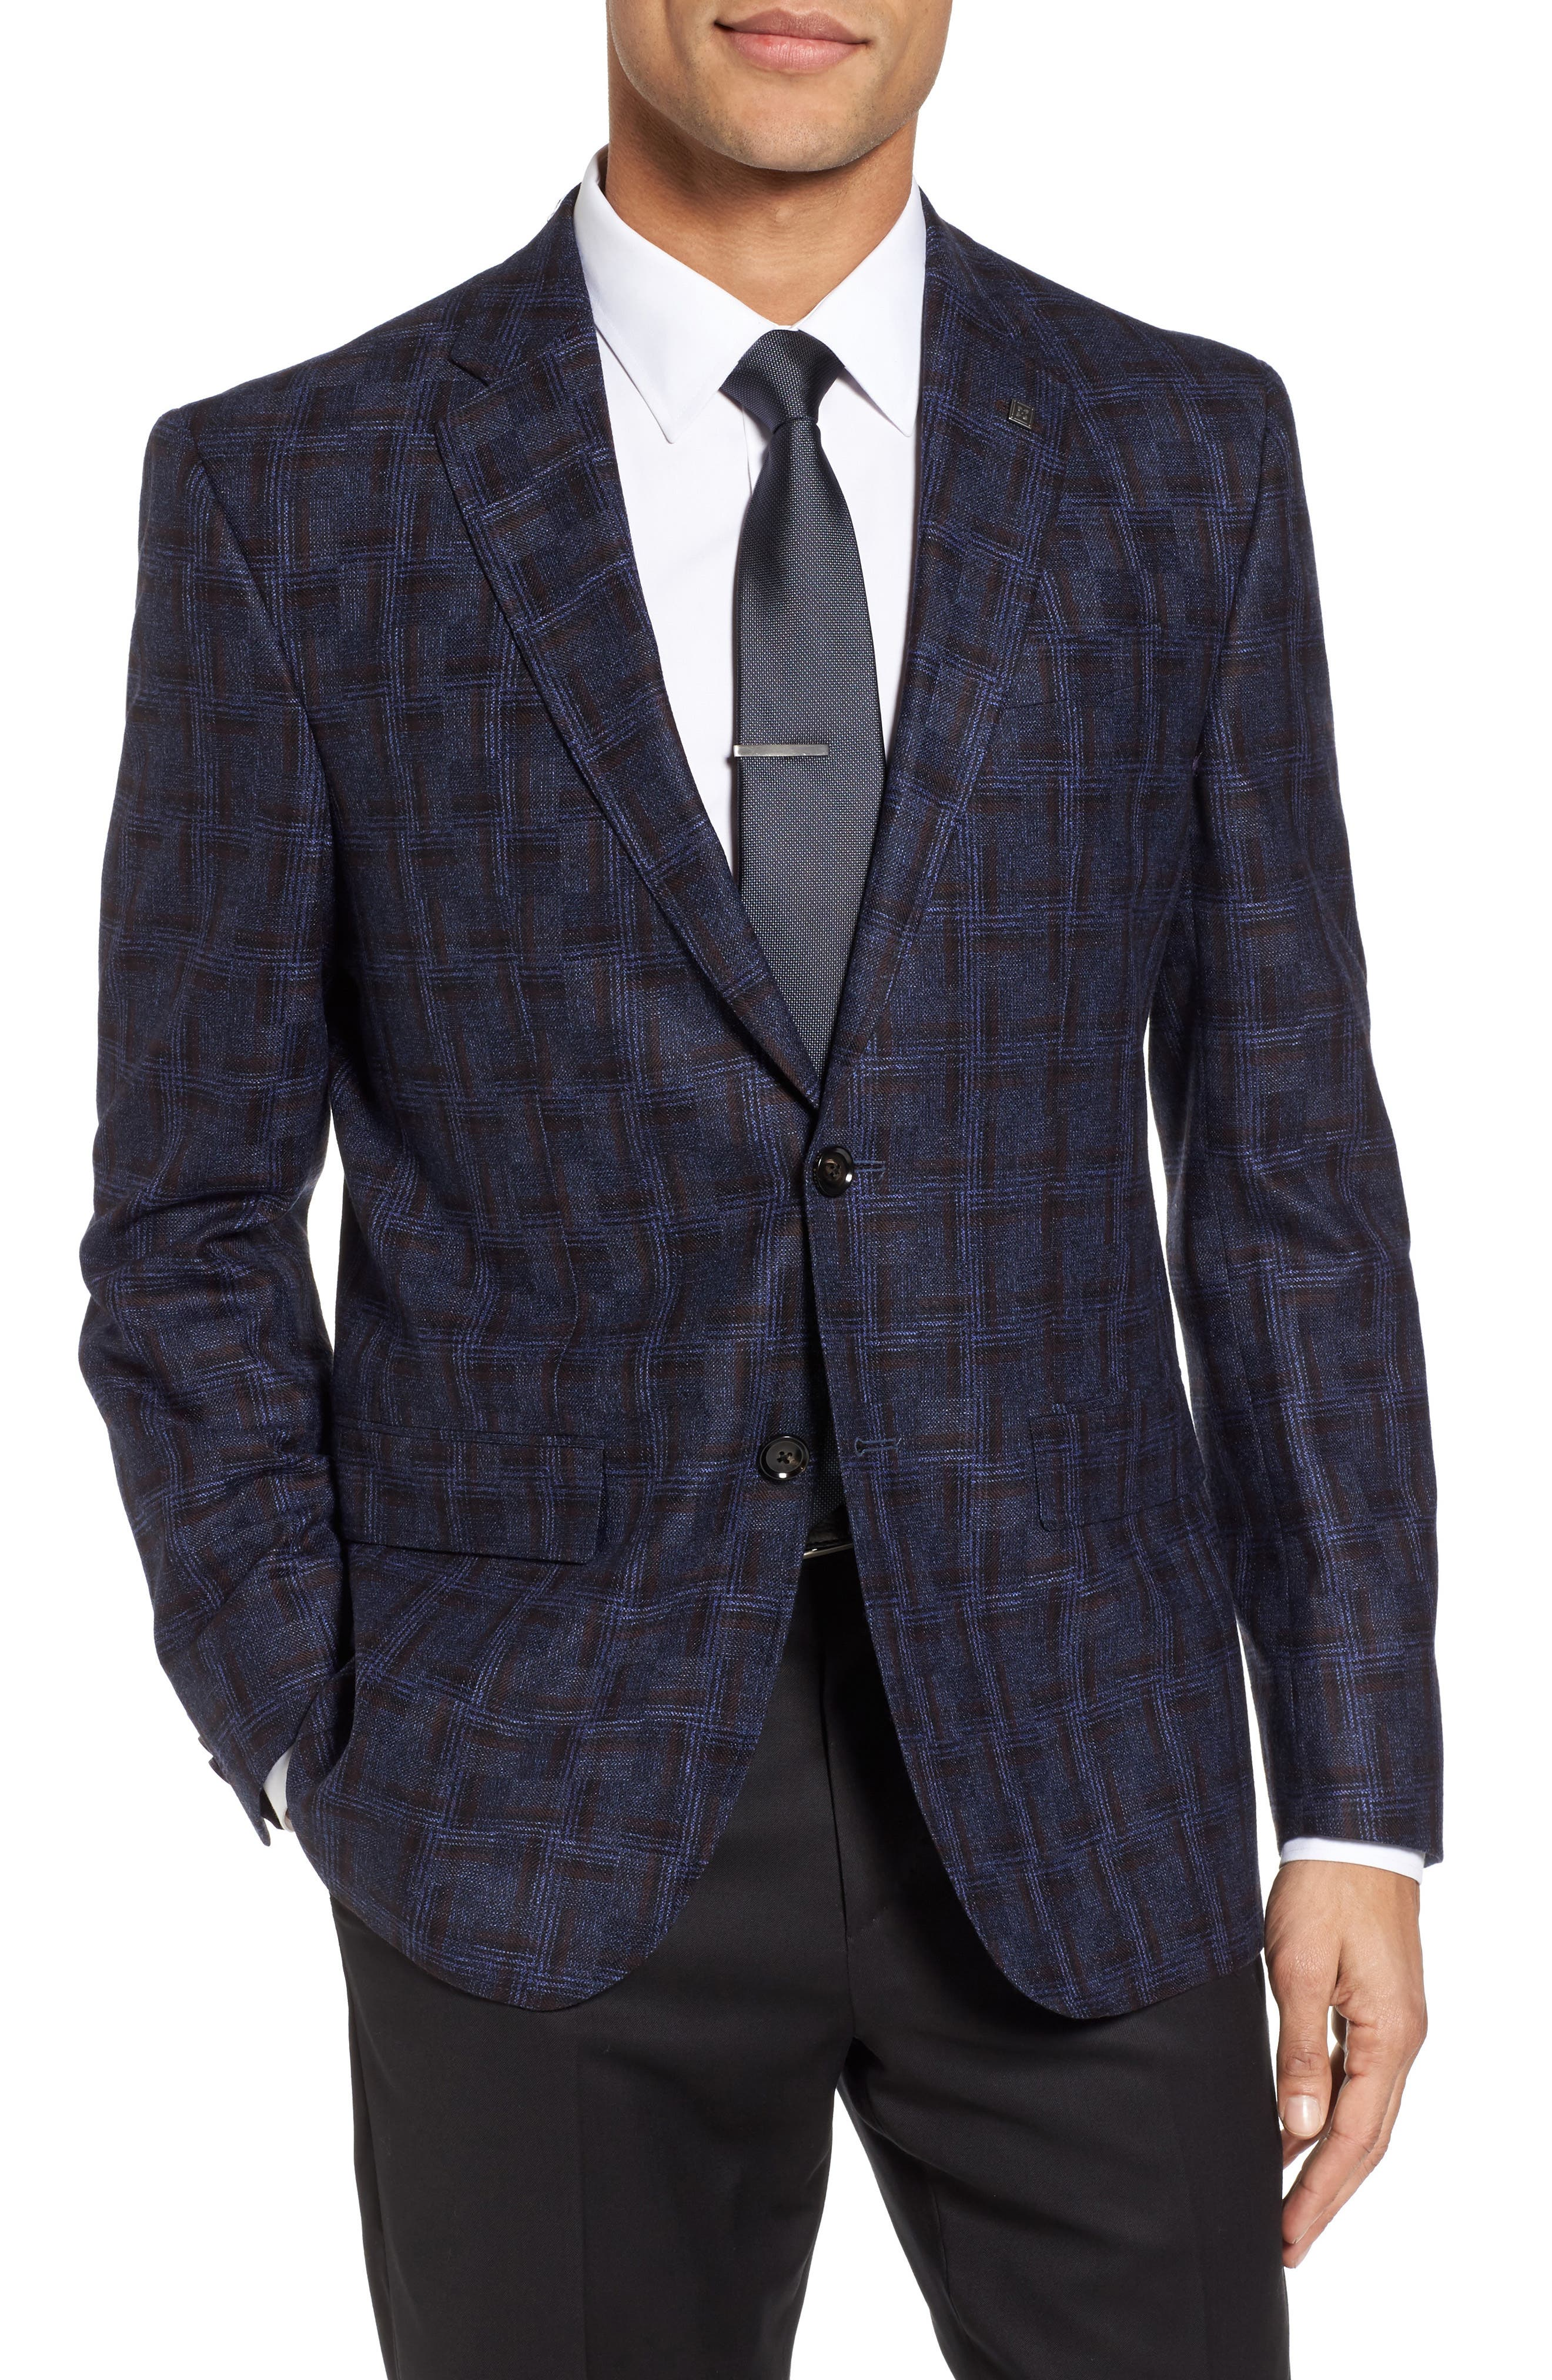 Jay Trim Fit Plaid Wool Sport Coat,                             Main thumbnail 1, color,